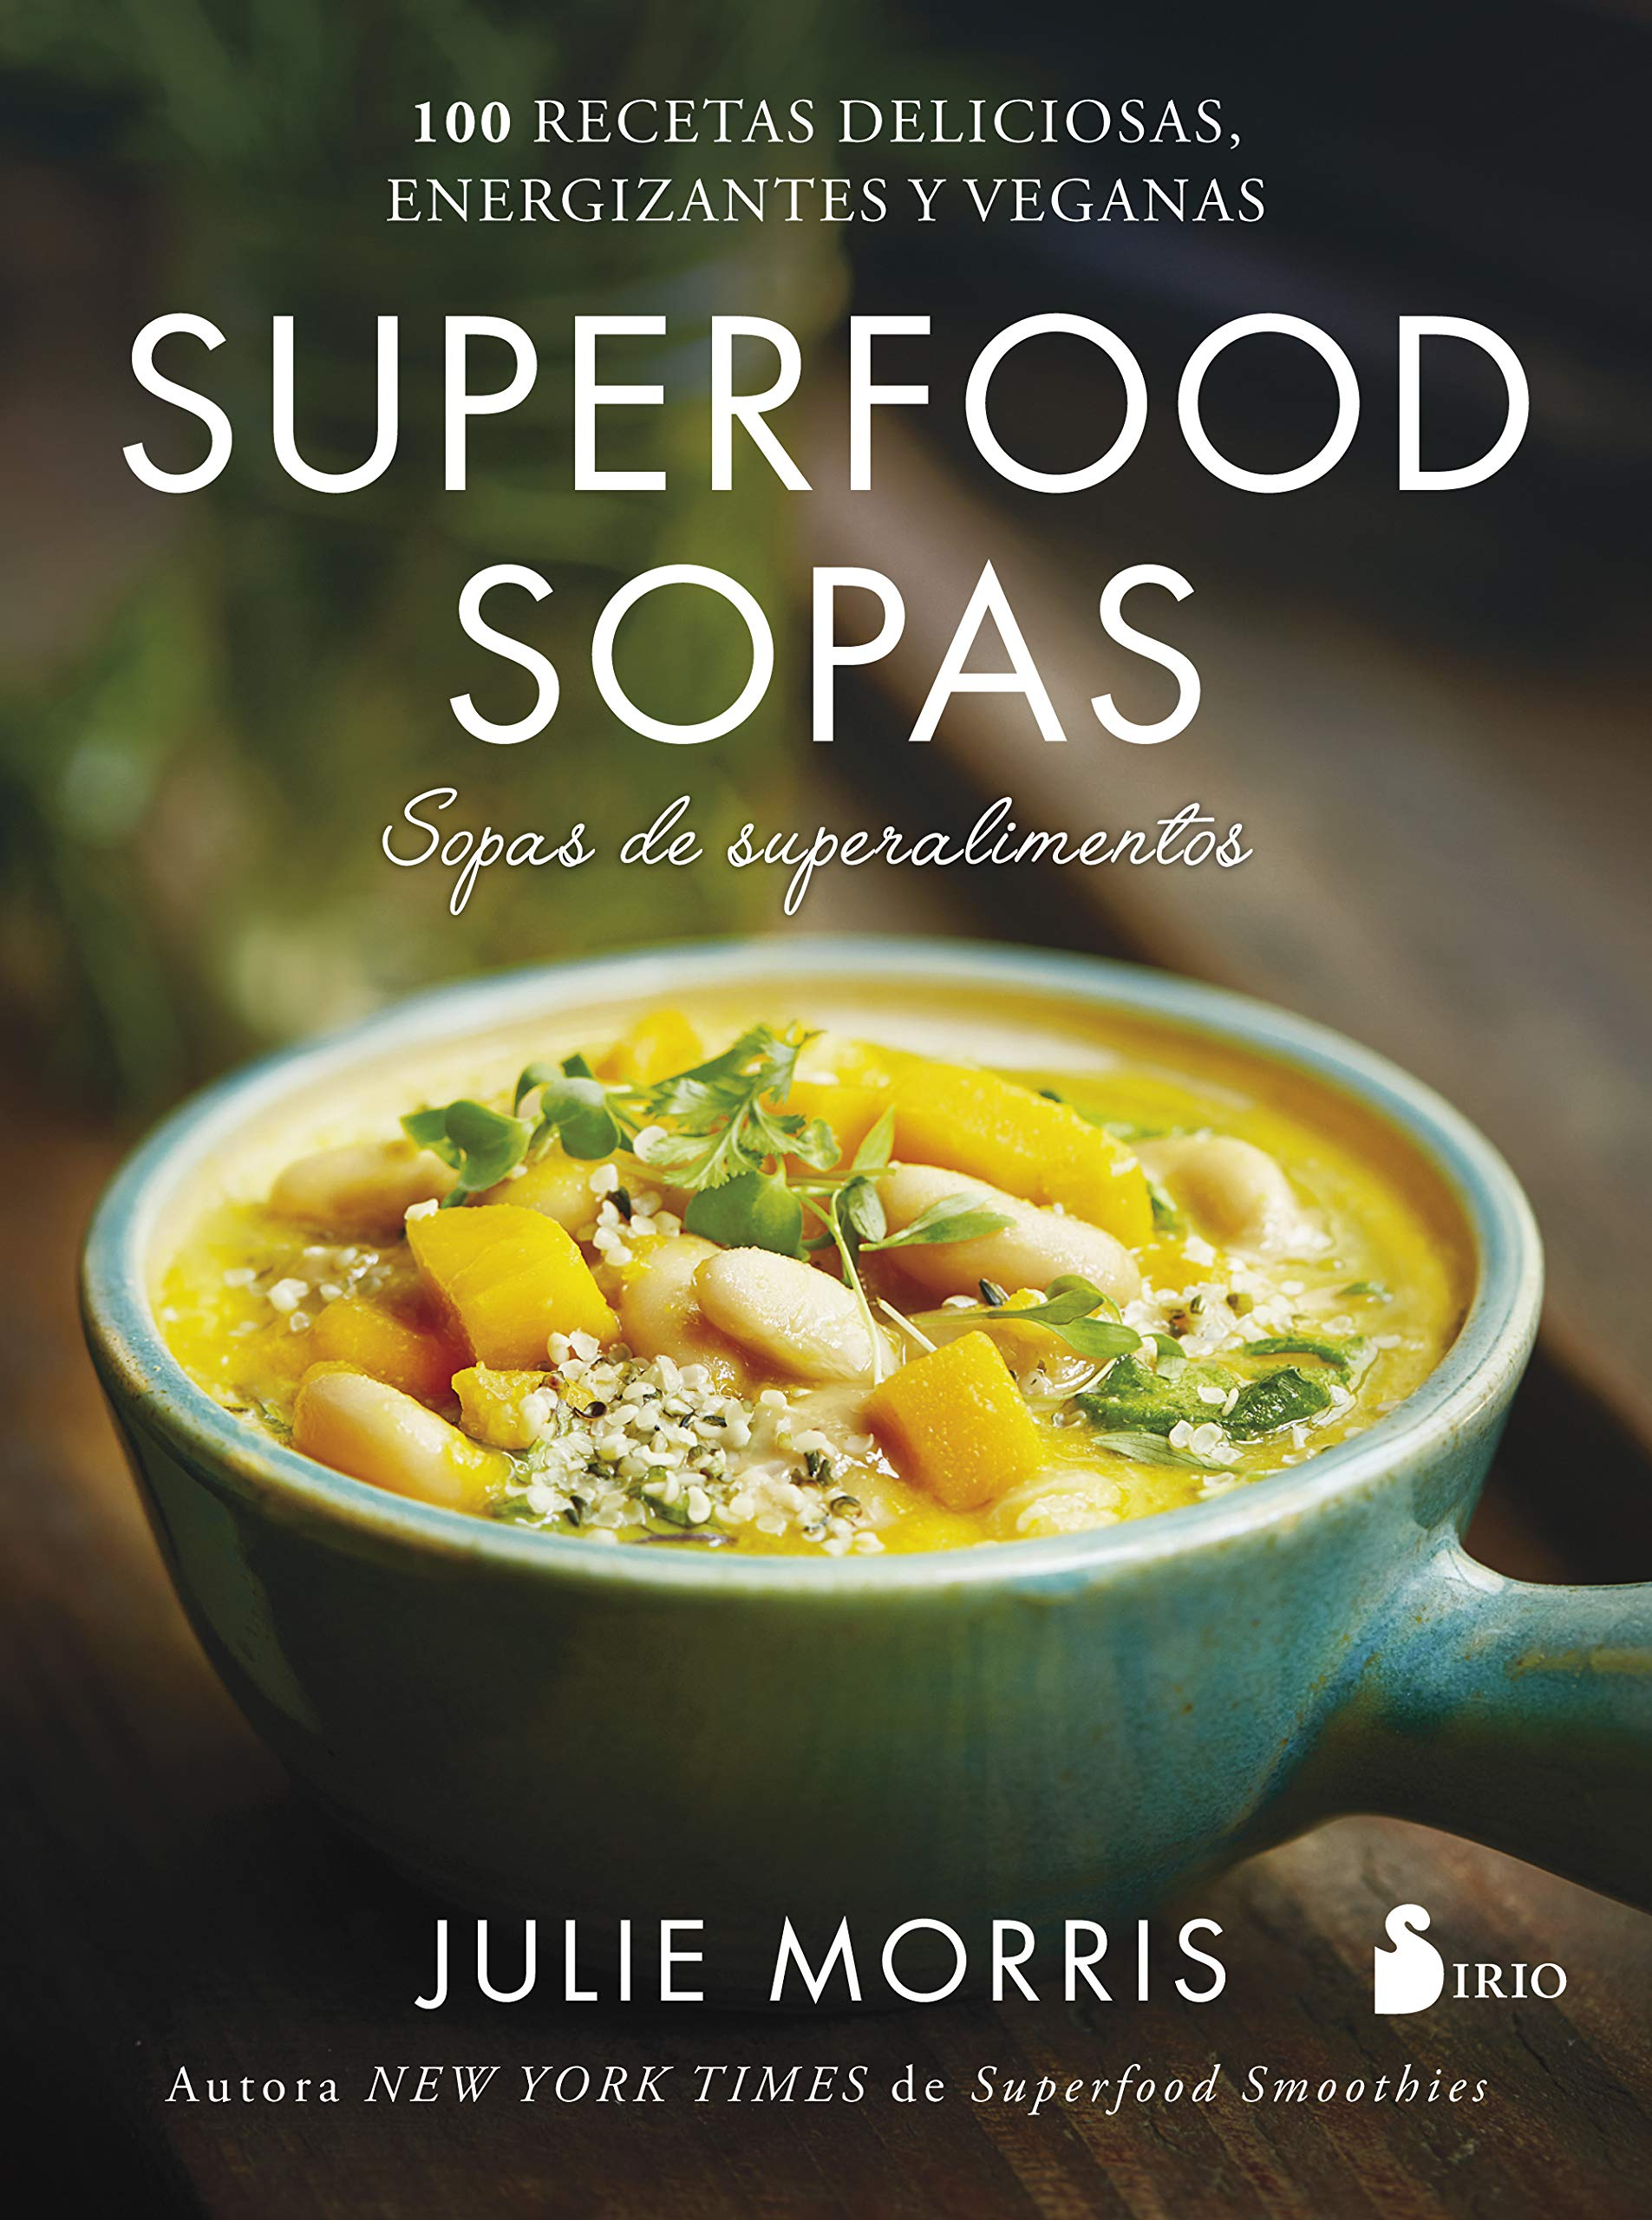 Superfood sopas: Amazon.es: JULIE MORRIS, BEGOÑA OLGA MERINO ...